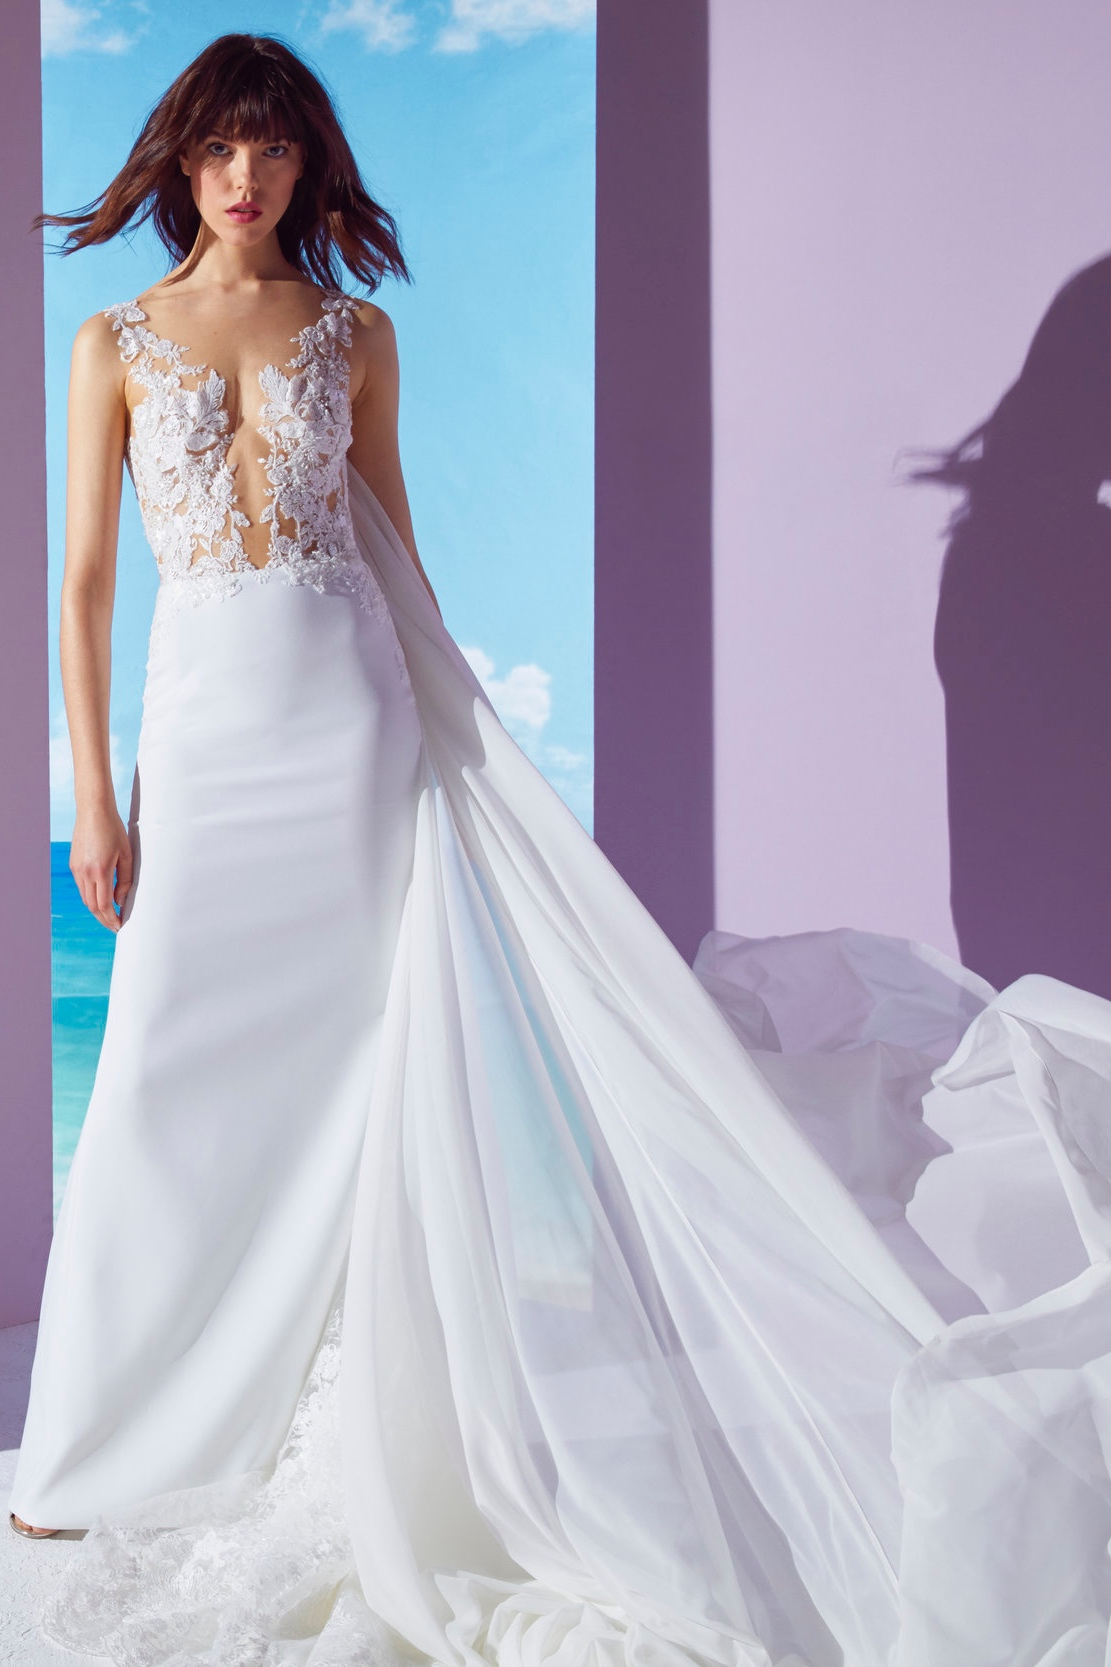 Ines by Ines Di Santo Bridal Spring 2019   NADJA    INQUIRE